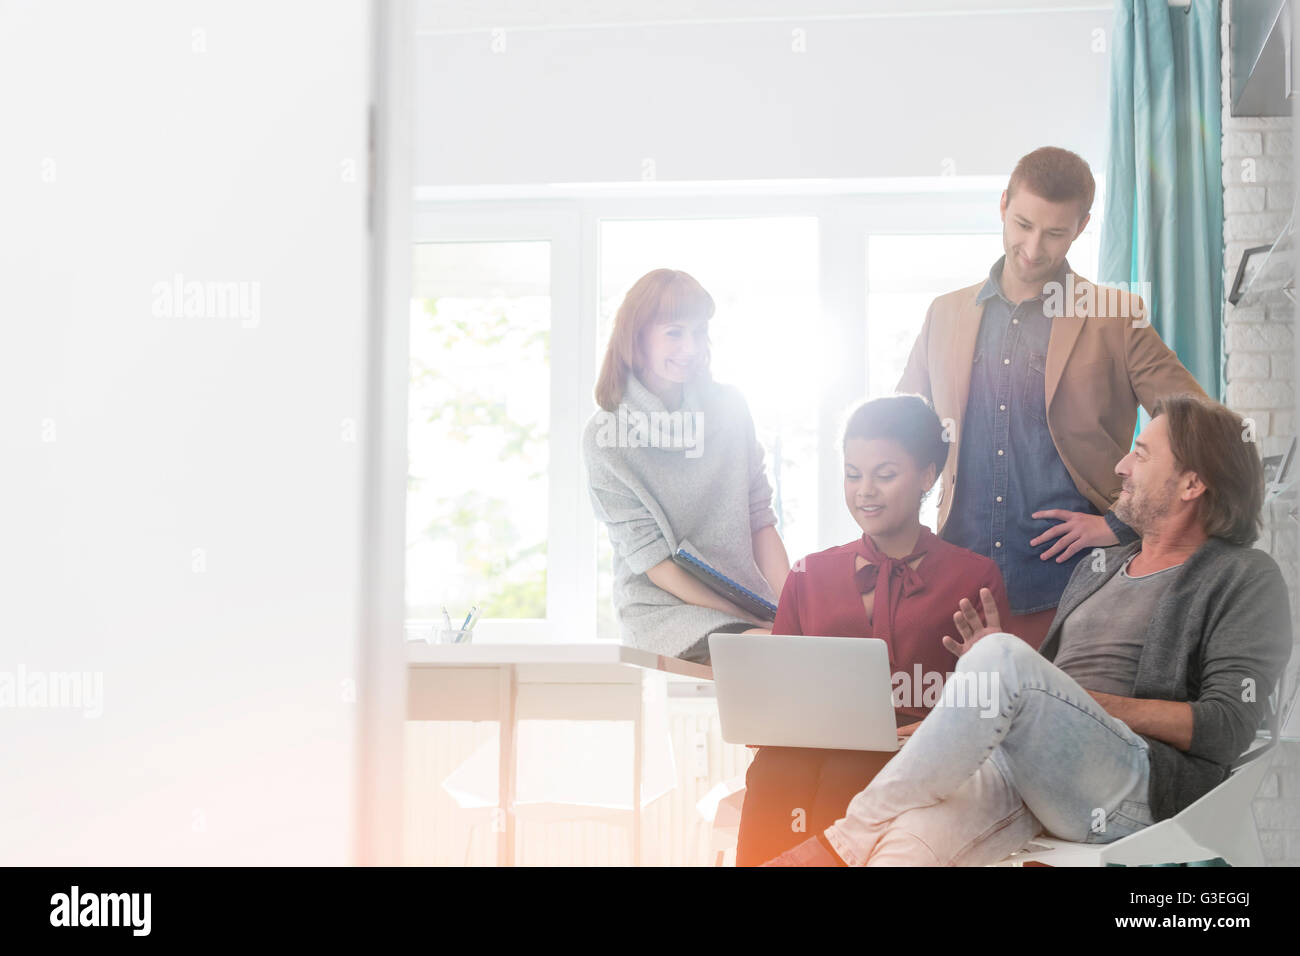 Creative business people using laptop in meeting - Stock Image